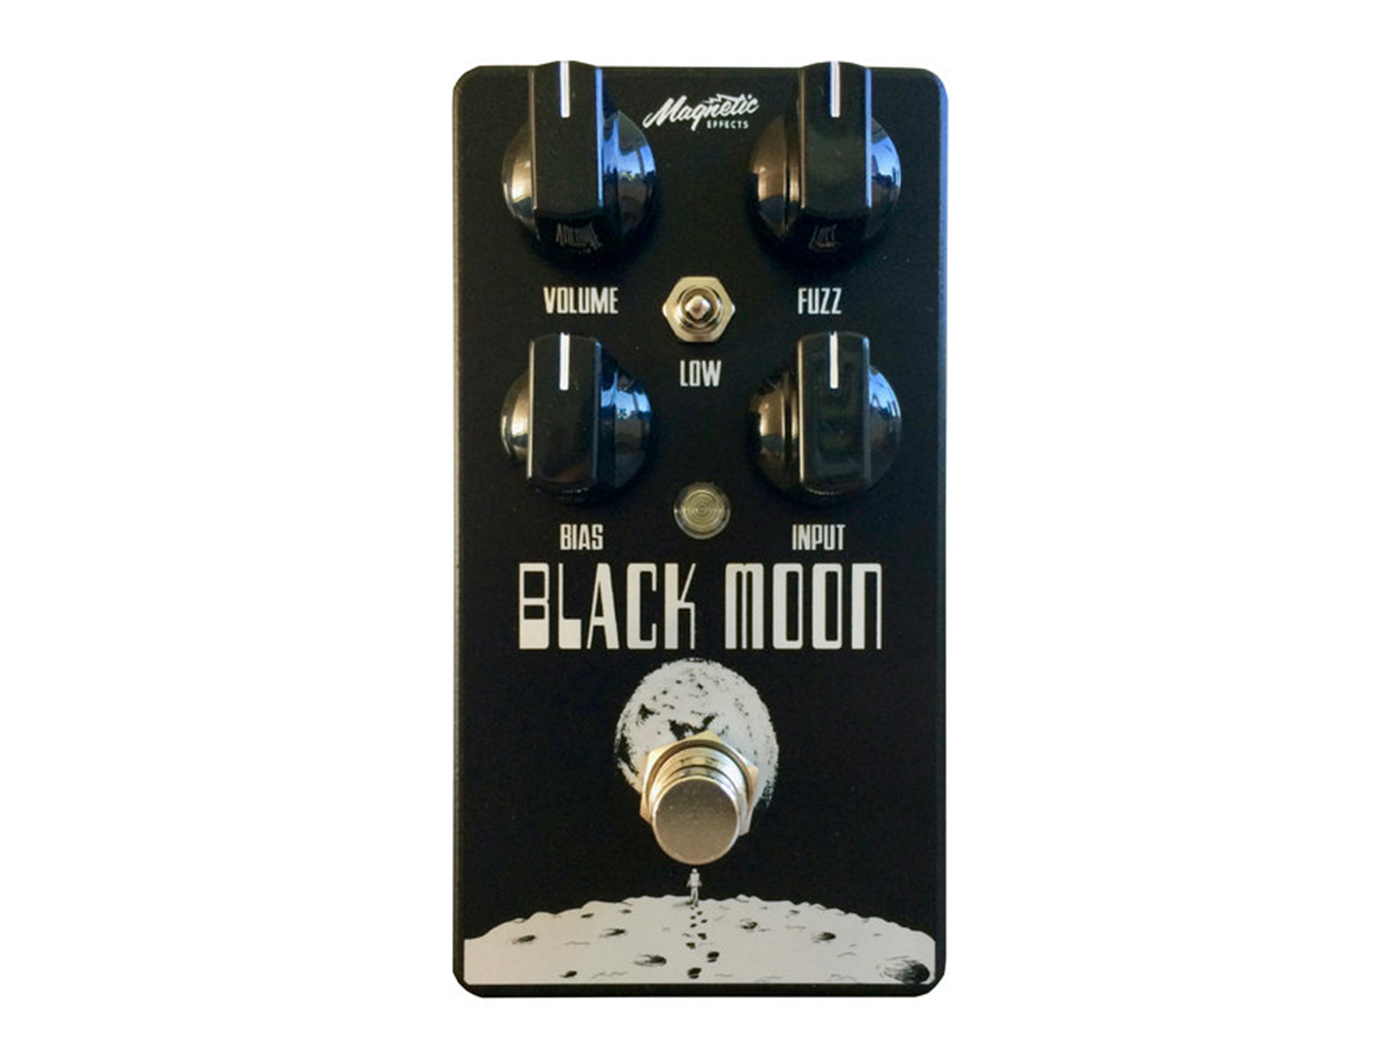 Magnetic Effects unveils the Black Moon, Lonely Robot